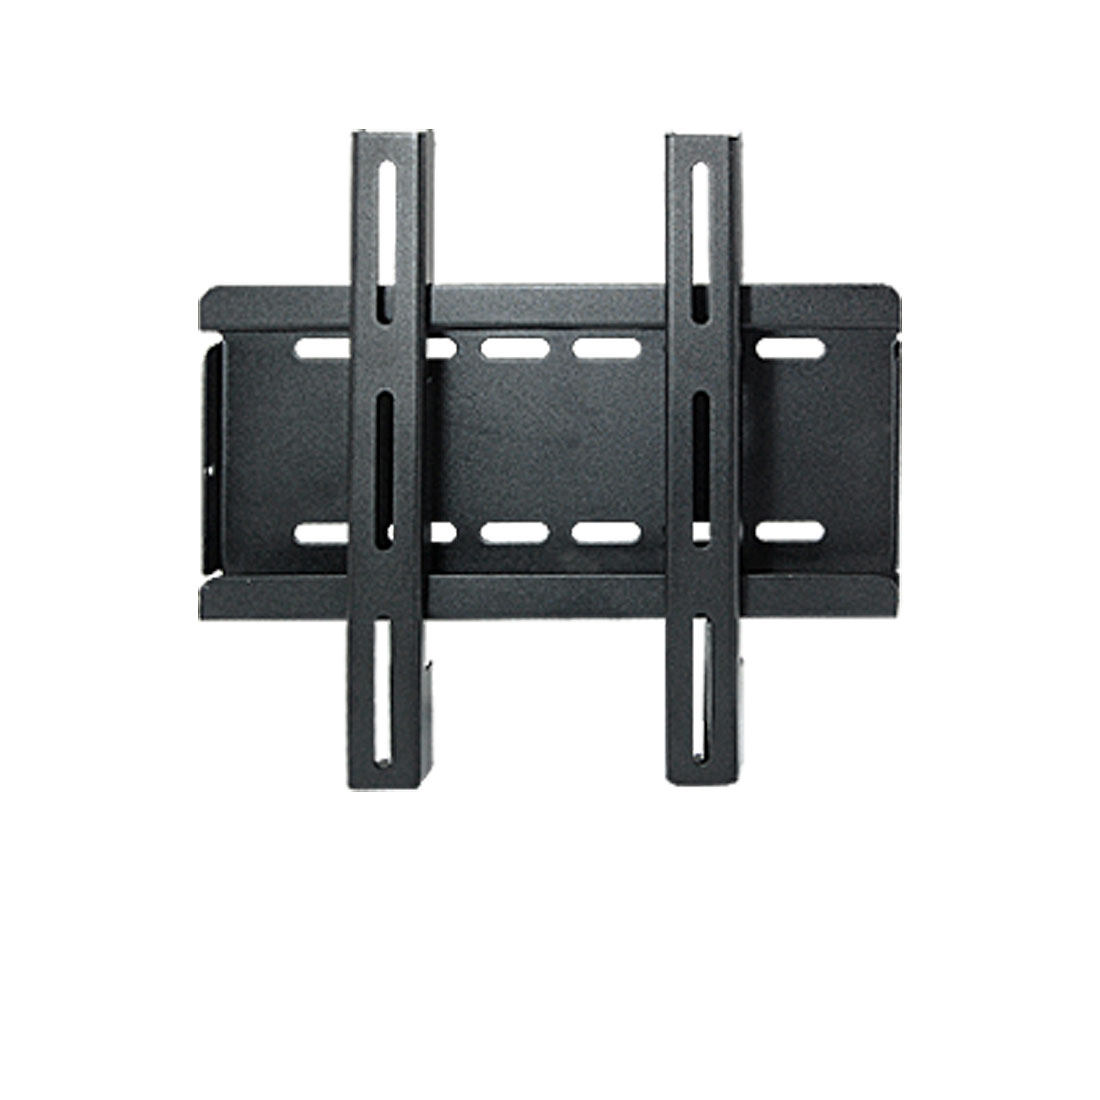 "Universal Tilt Wall Mount Bracket for 10"" 12"" 17"" 21"" 30"" 32"" Inch LCD TV"